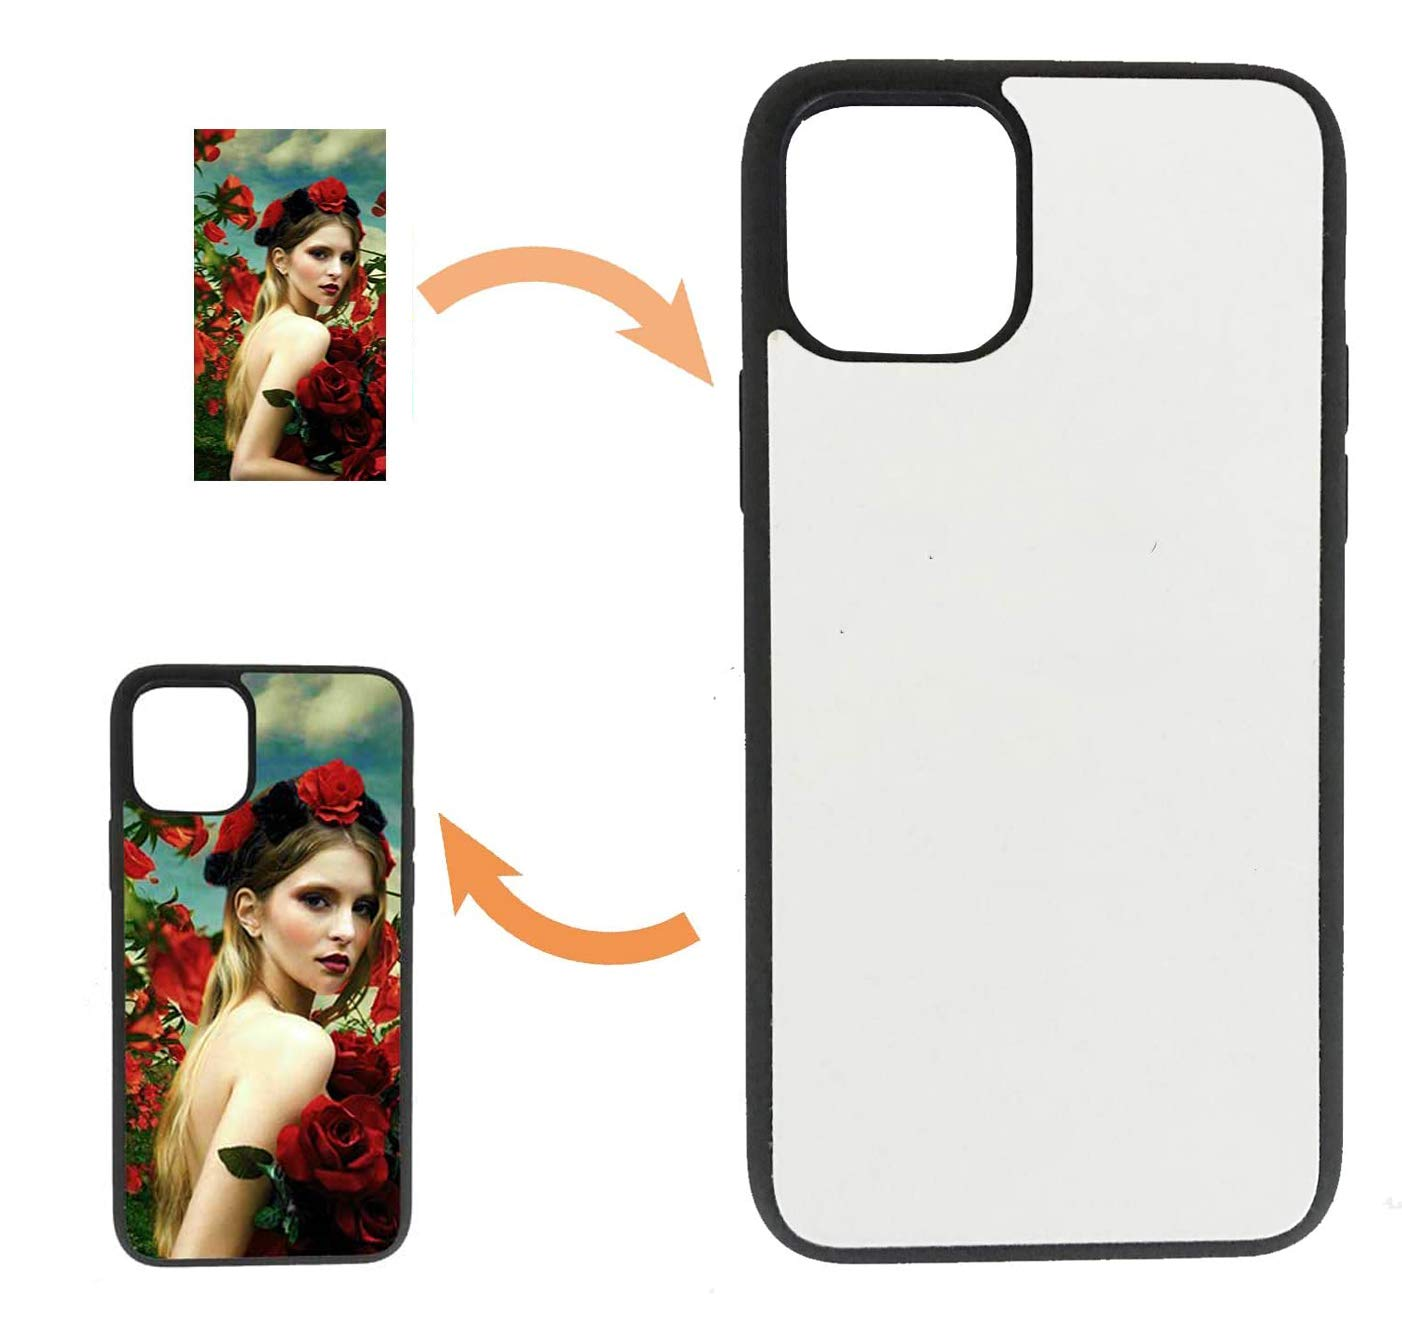 JUSTRY 10PCS Sublimation Blanks Phone Case Cases Covers Compatible with Apple iPhone 11, 6.1-Inch (2019) Blank Printable Phone Case for DIY Soft Rubber Smooth Edges Protective Shockproof Slim Case DIY